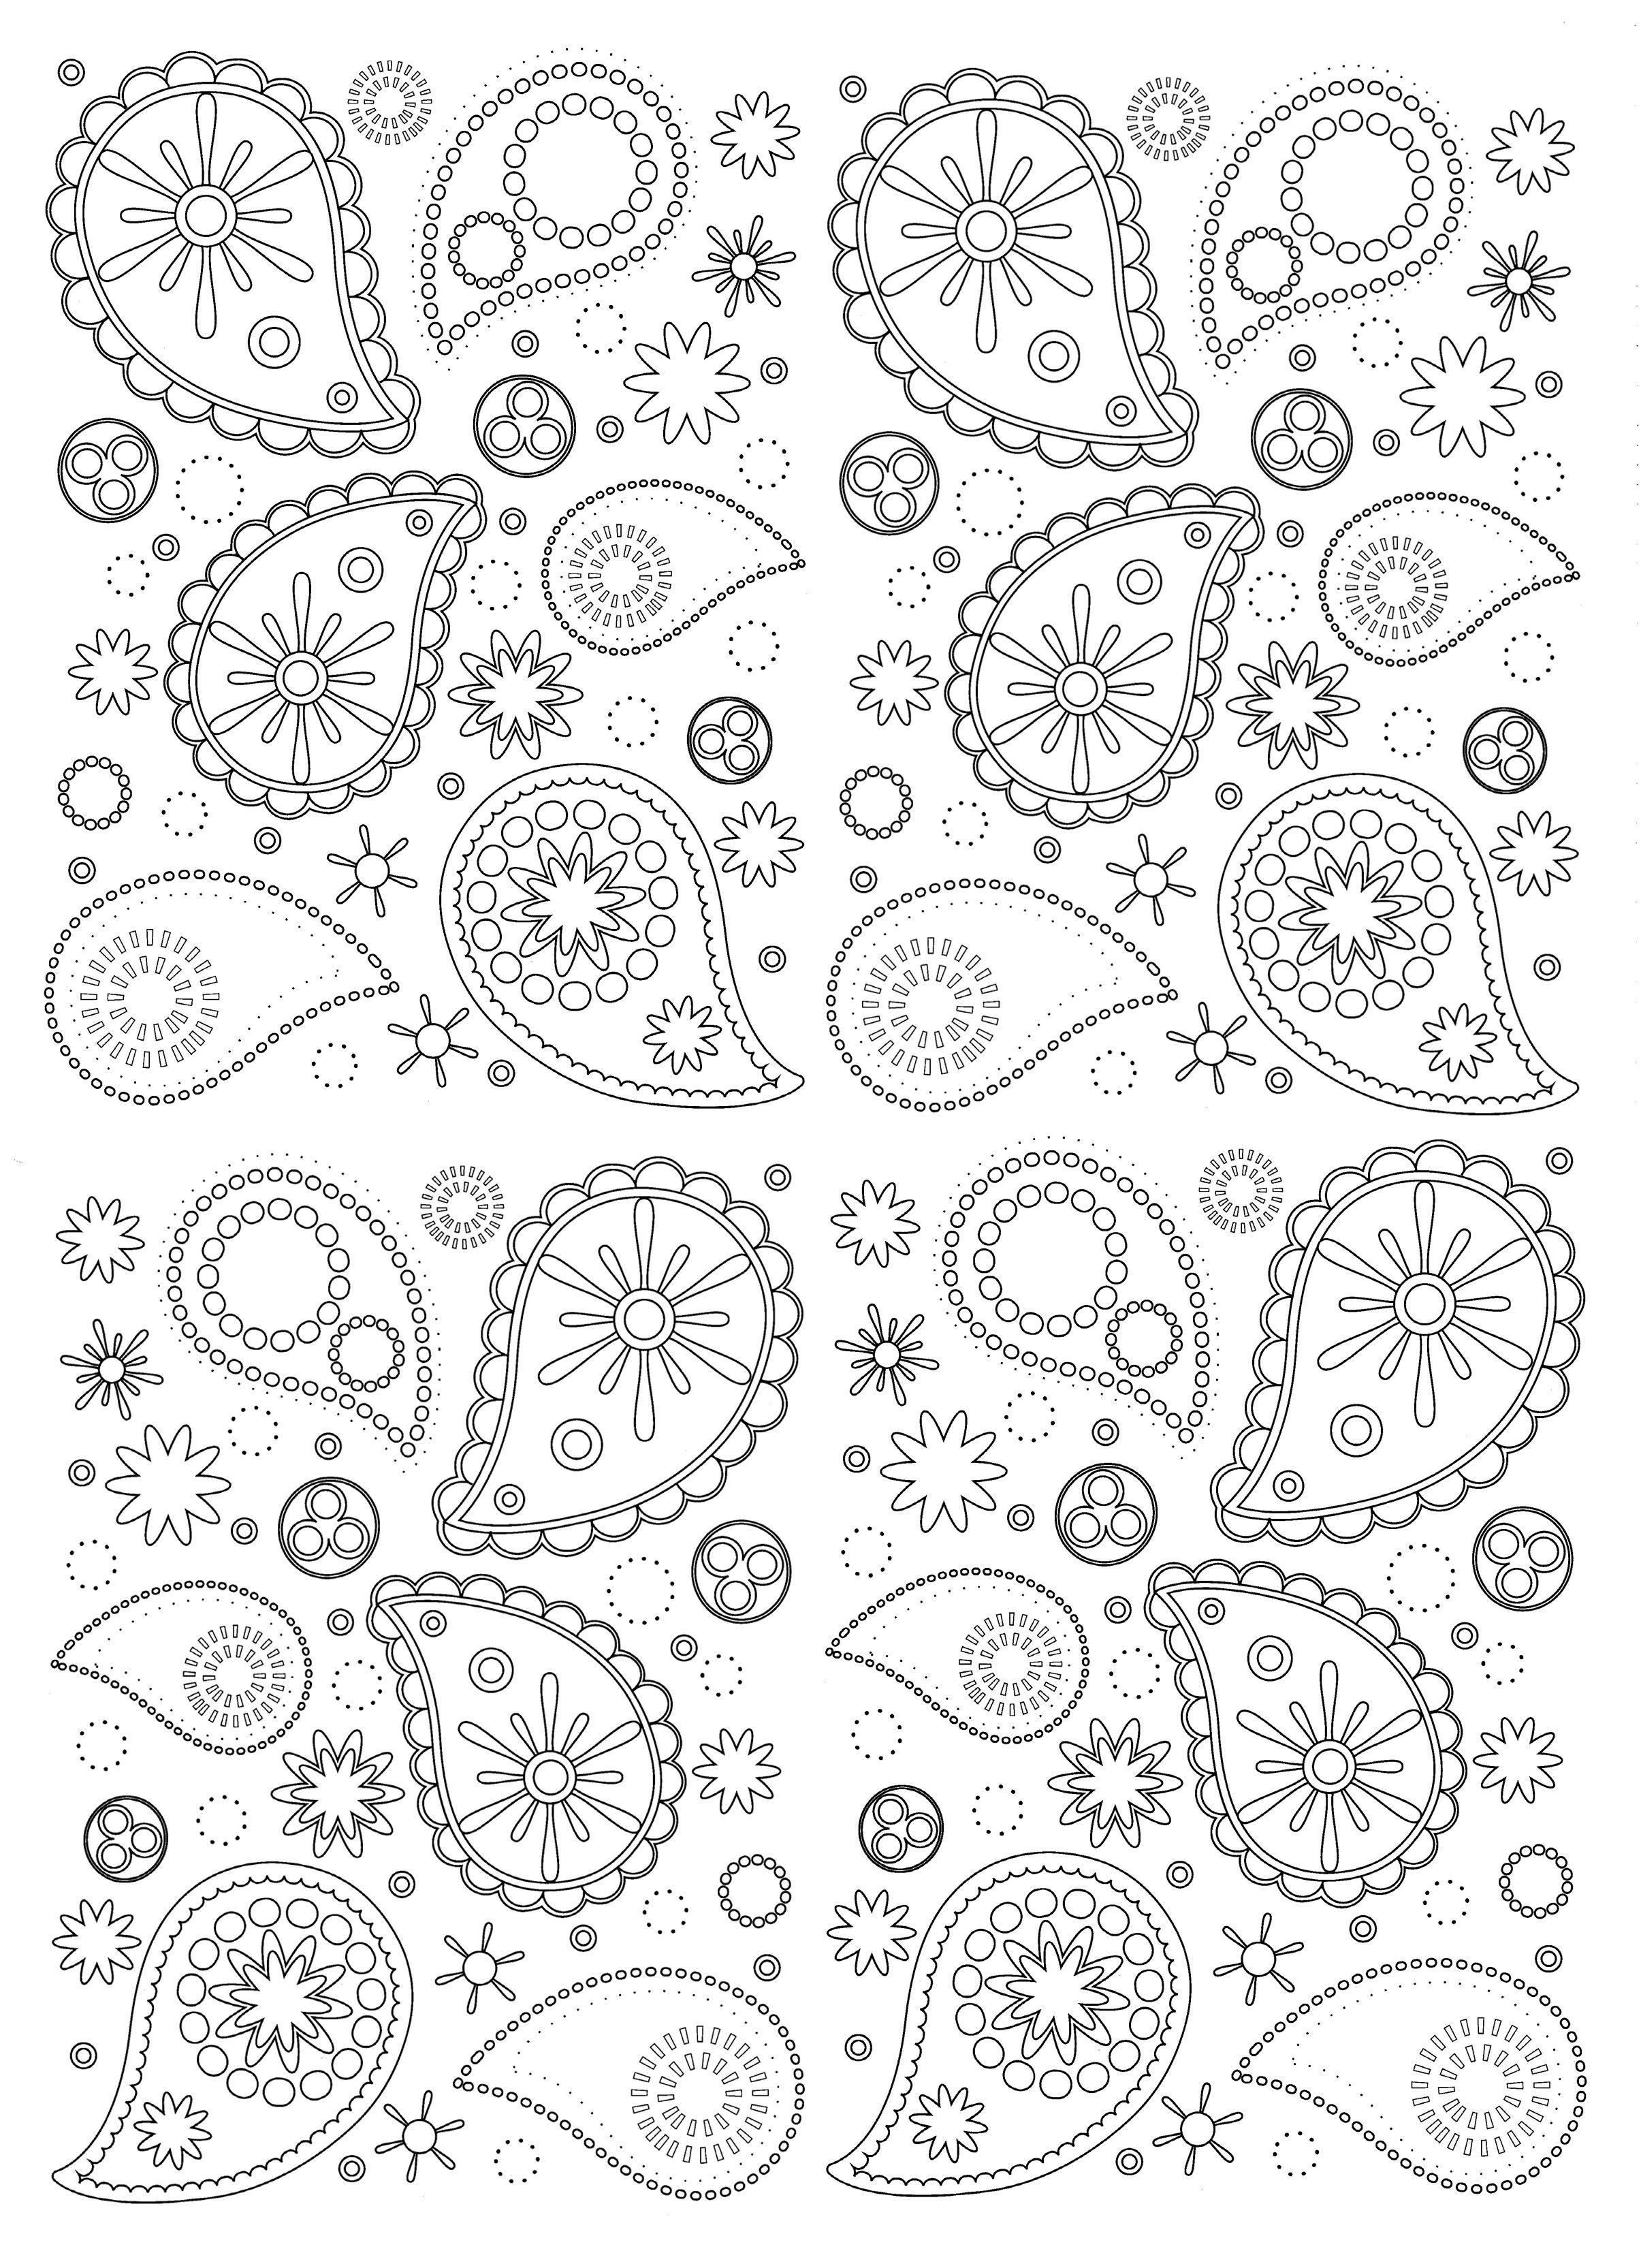 Free Coloring Page Paisley Beautiful And Harmonious Patterns To Print Color